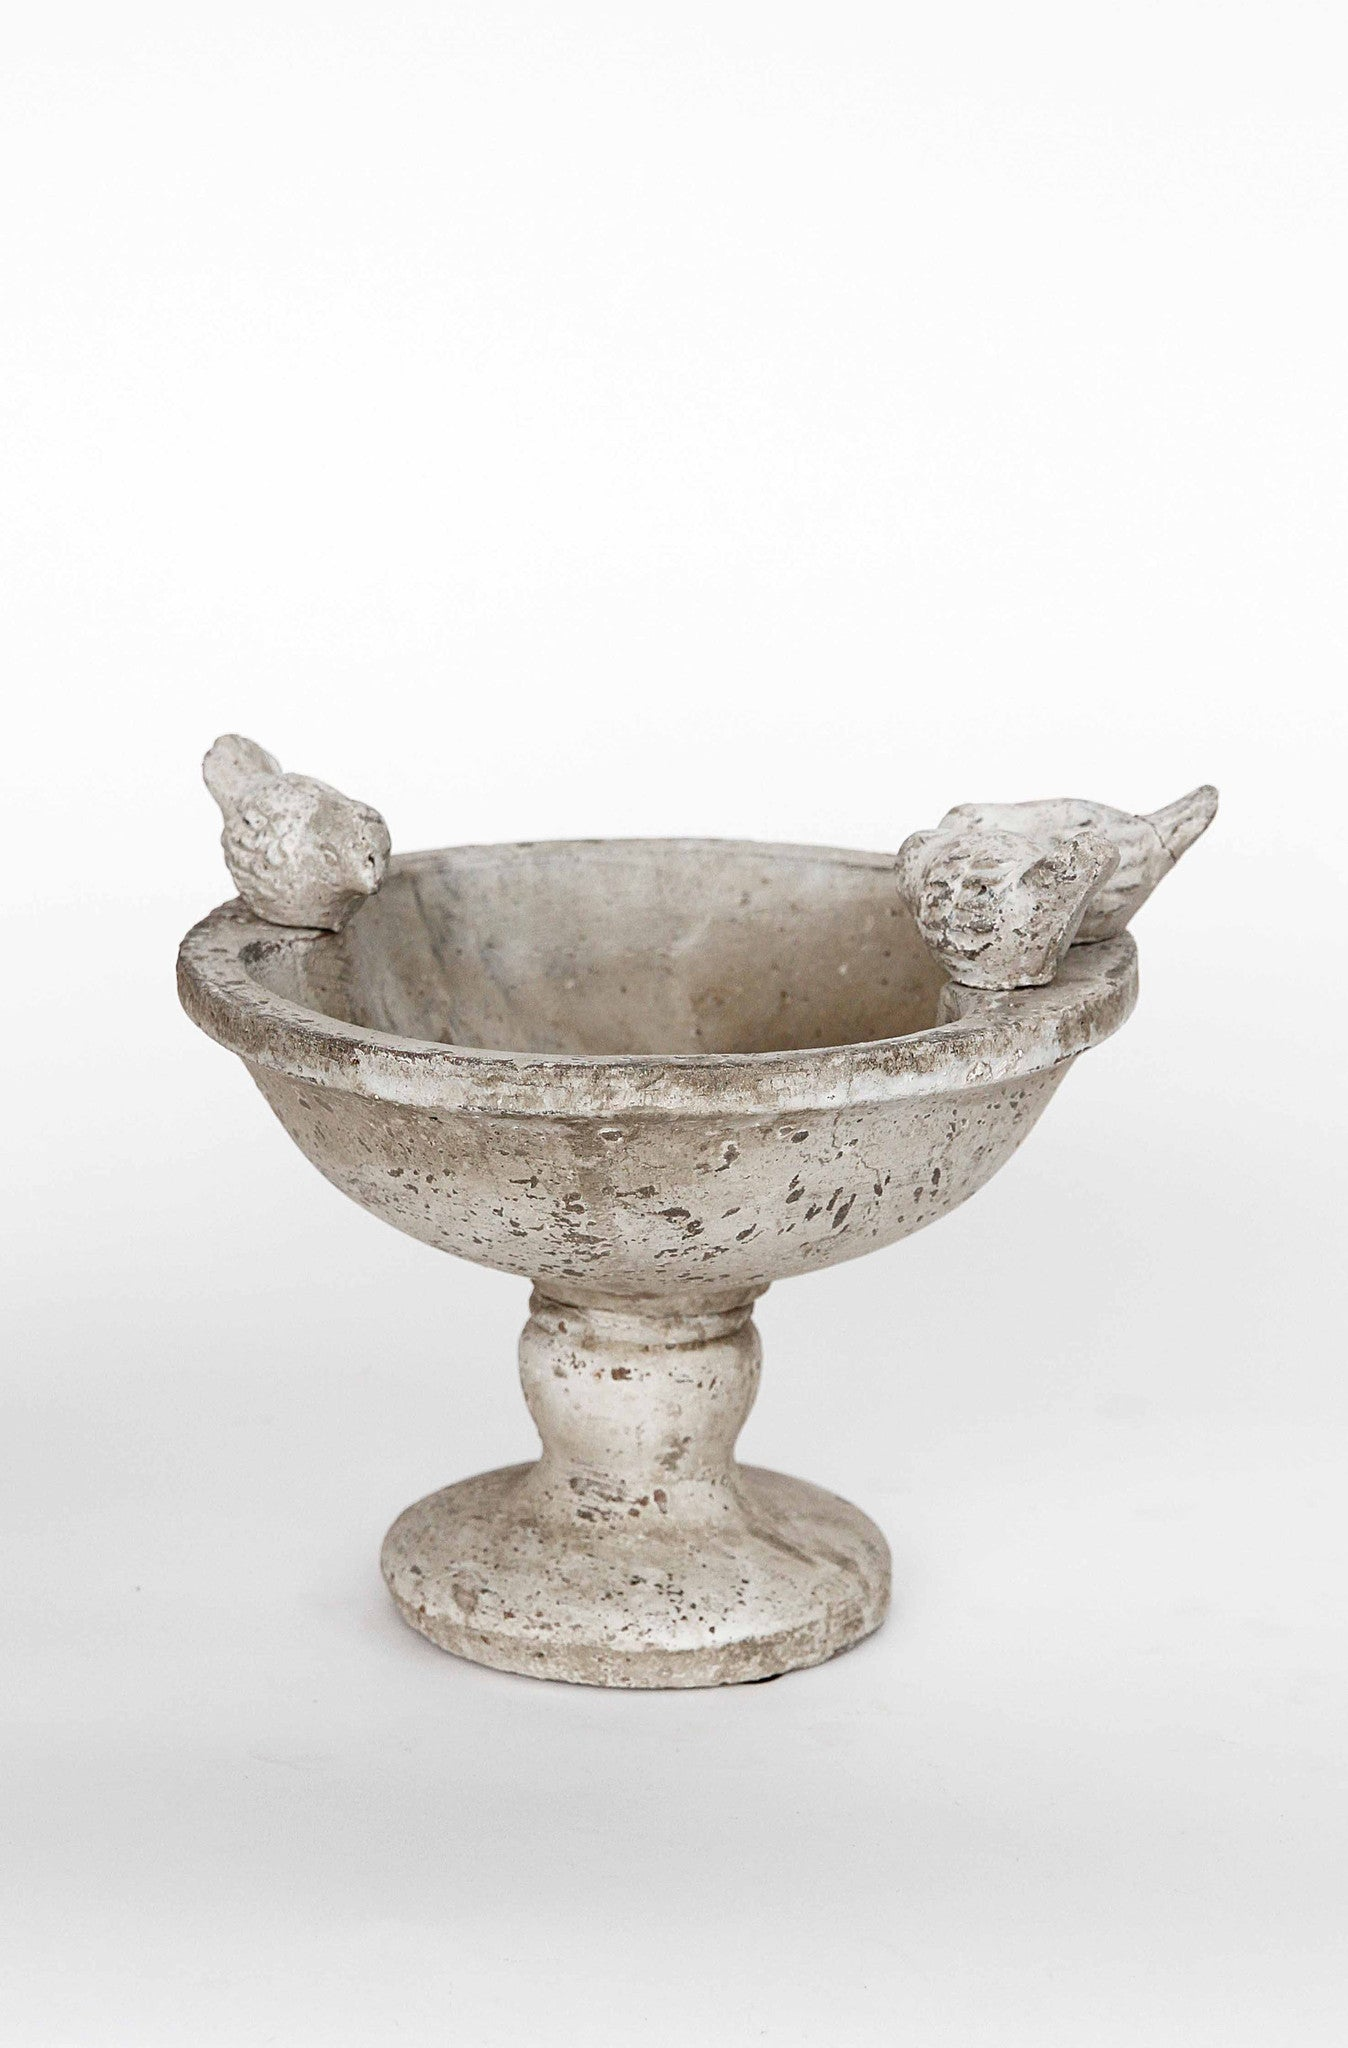 Ceramic Bowl with 3 Bird Figures